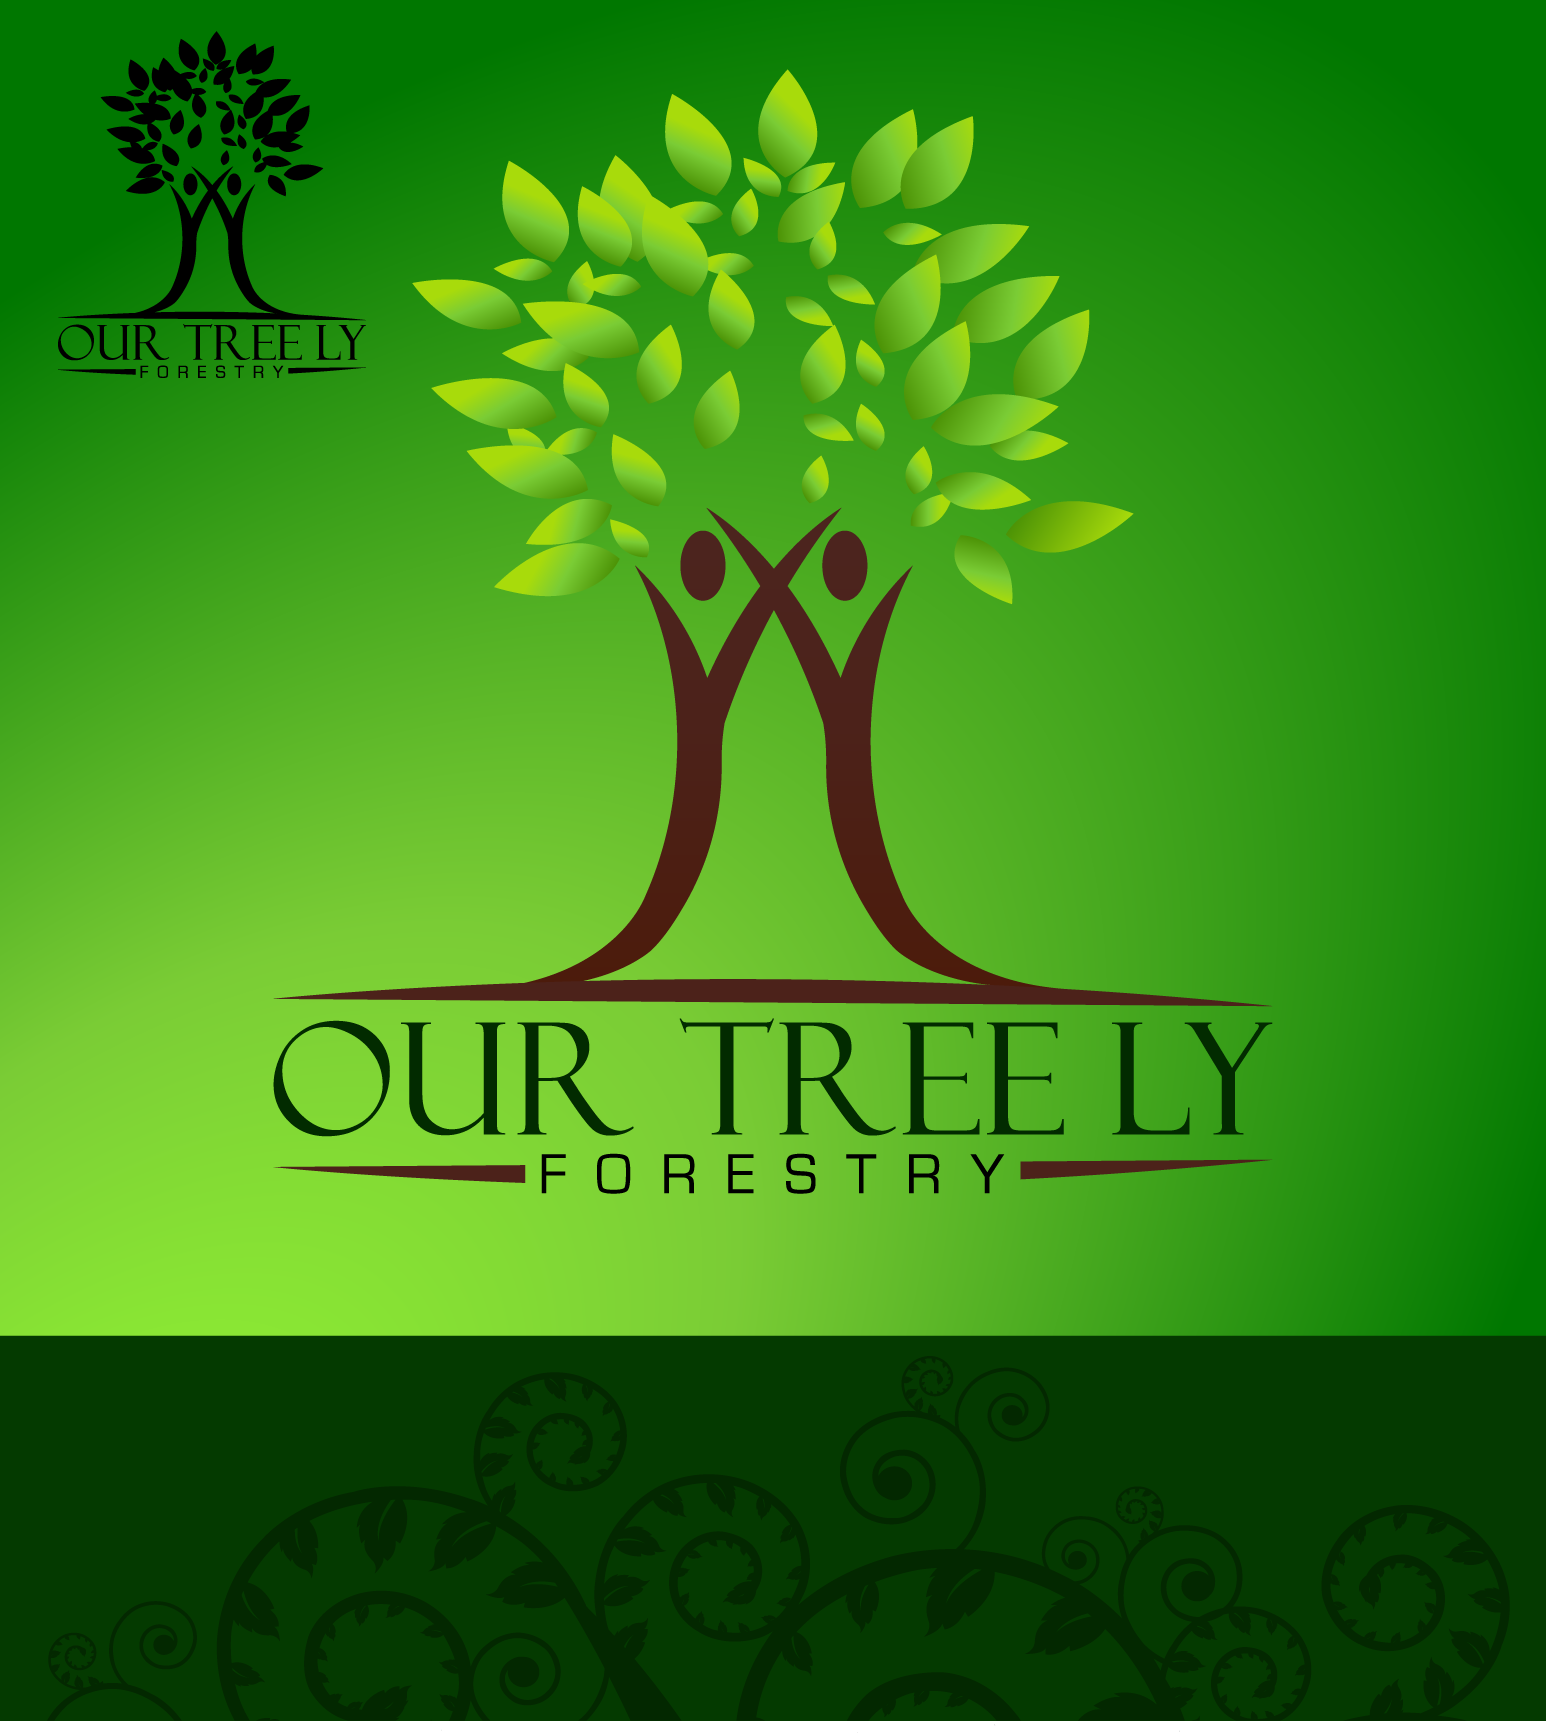 """Packaging Design by Noel Tibos - Entry No. 19 in the Packaging Design Contest Imaginative Packaging Design for """"Our Tree Iy""""."""